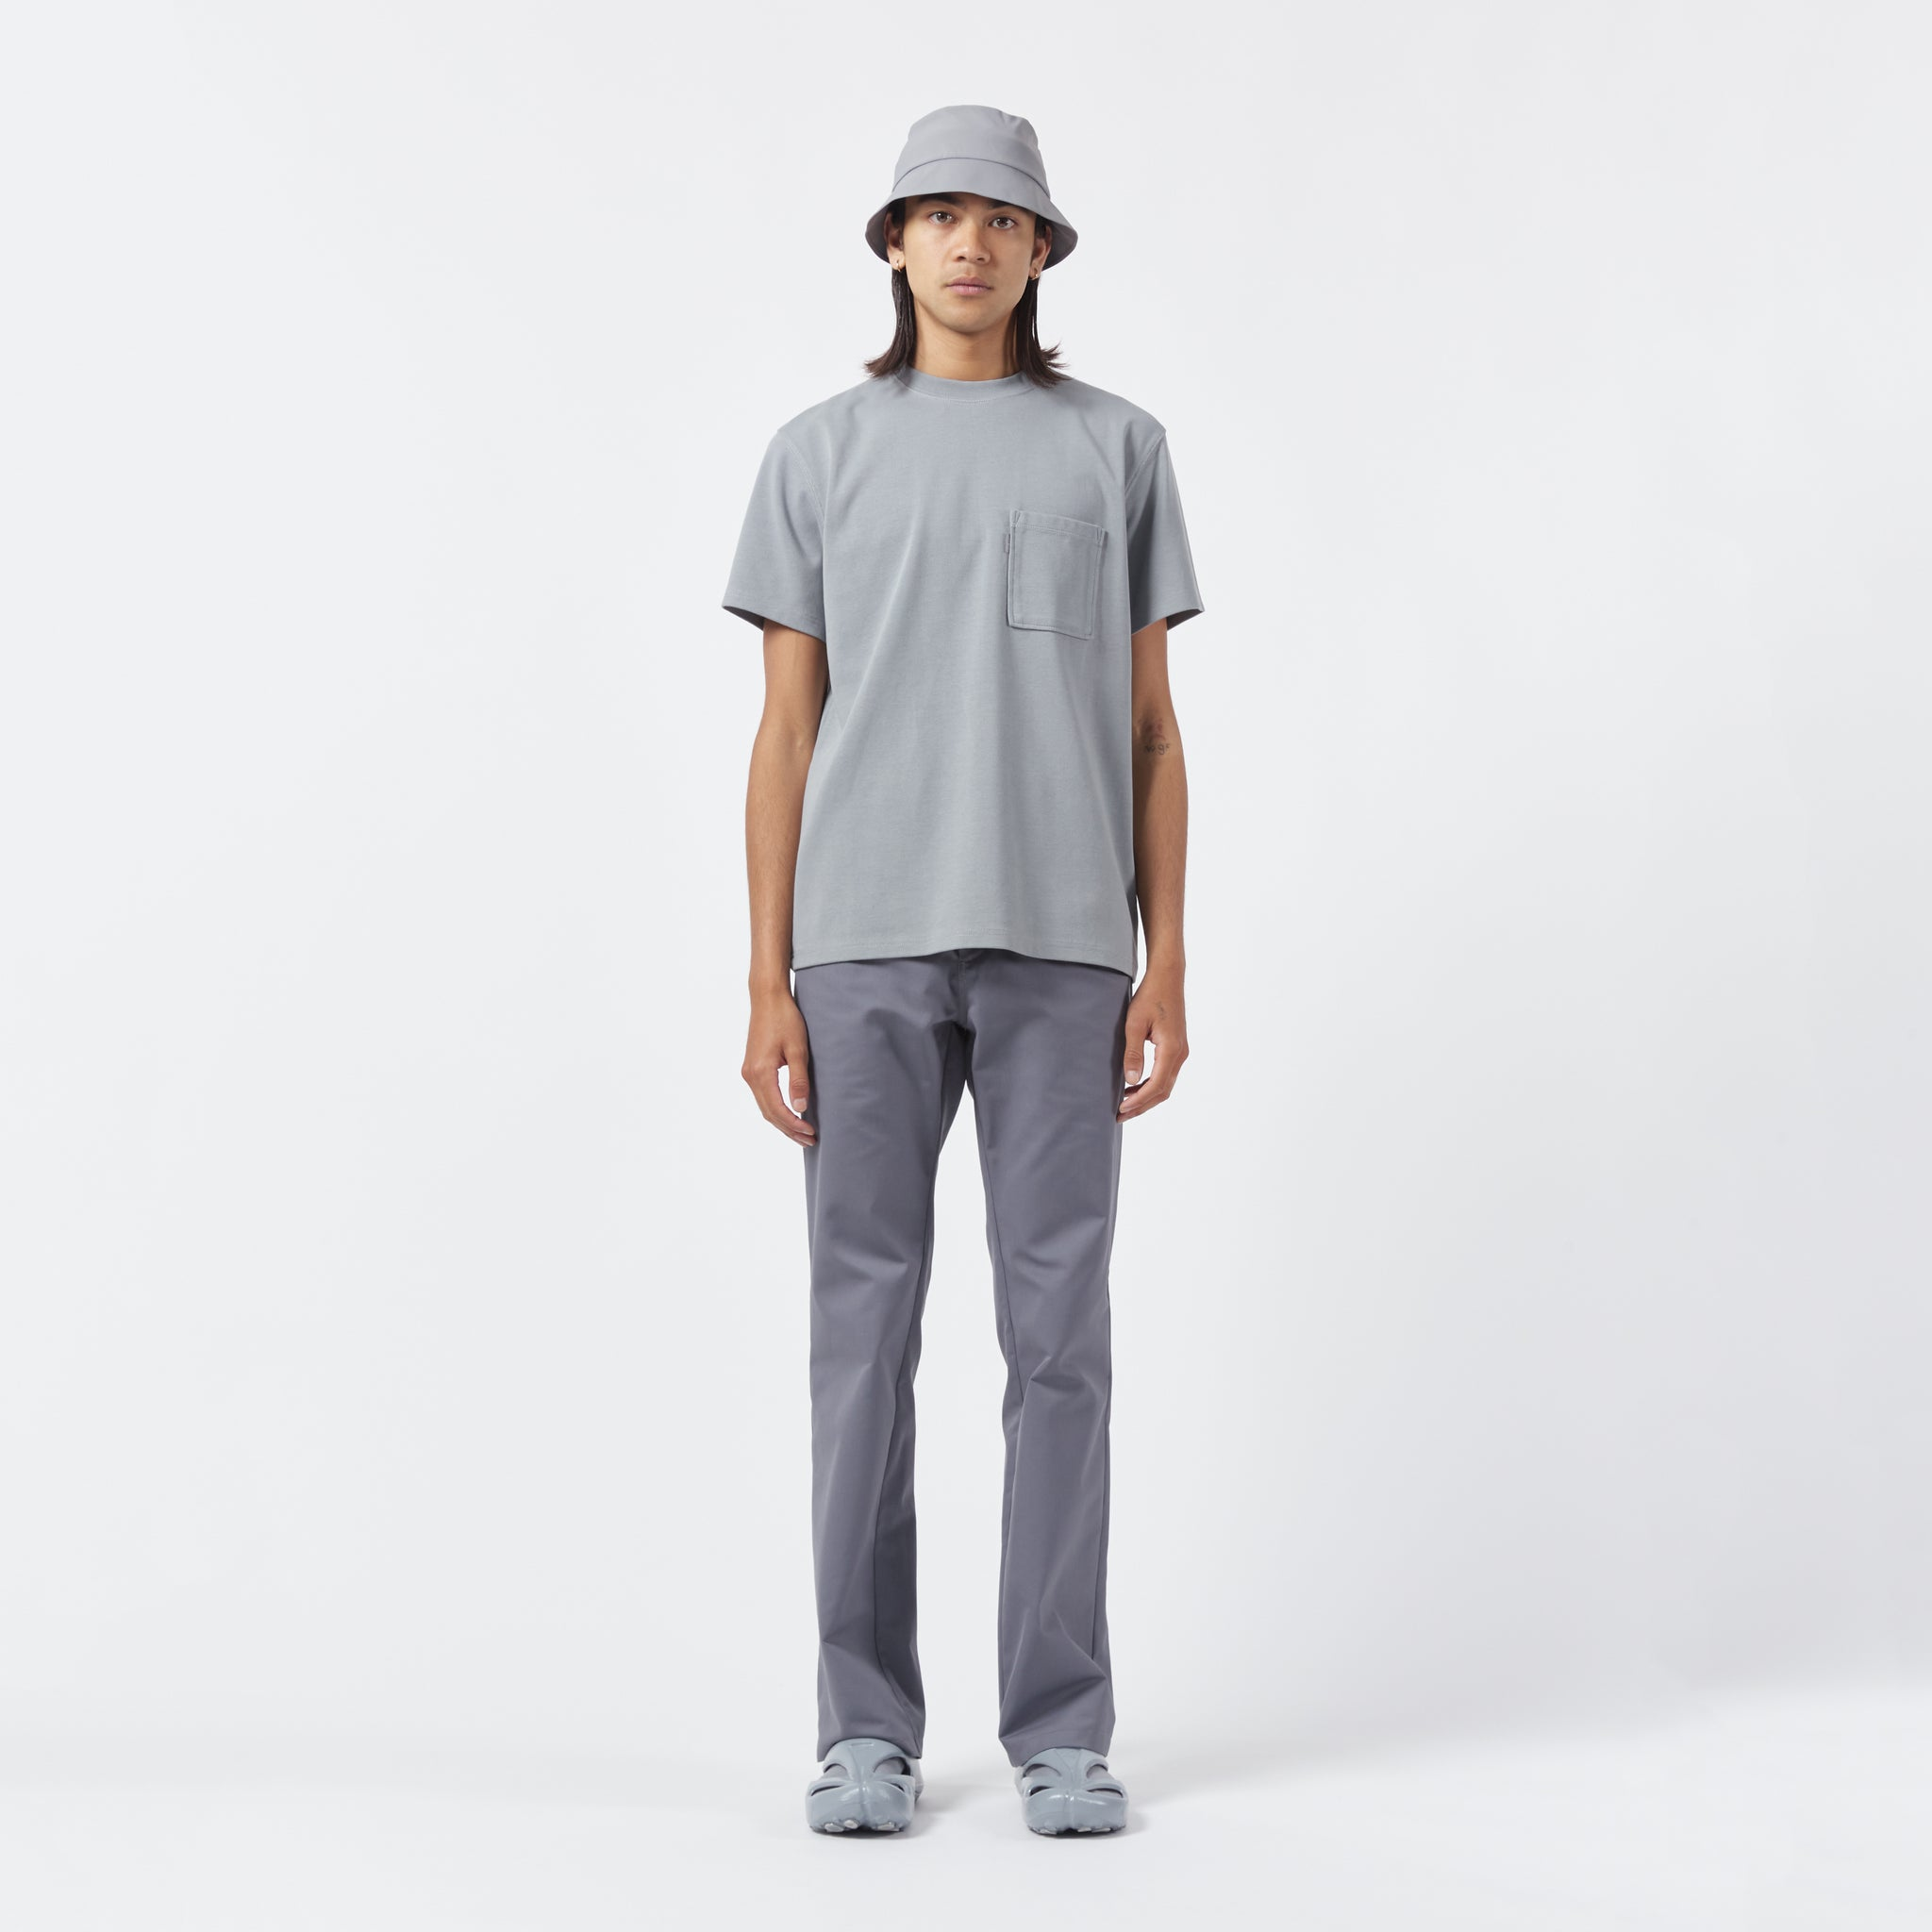 AFFIX WORKS AFFX WRKS STANDARDISED LOGO POCKET T-SHIRT SILVER GREY